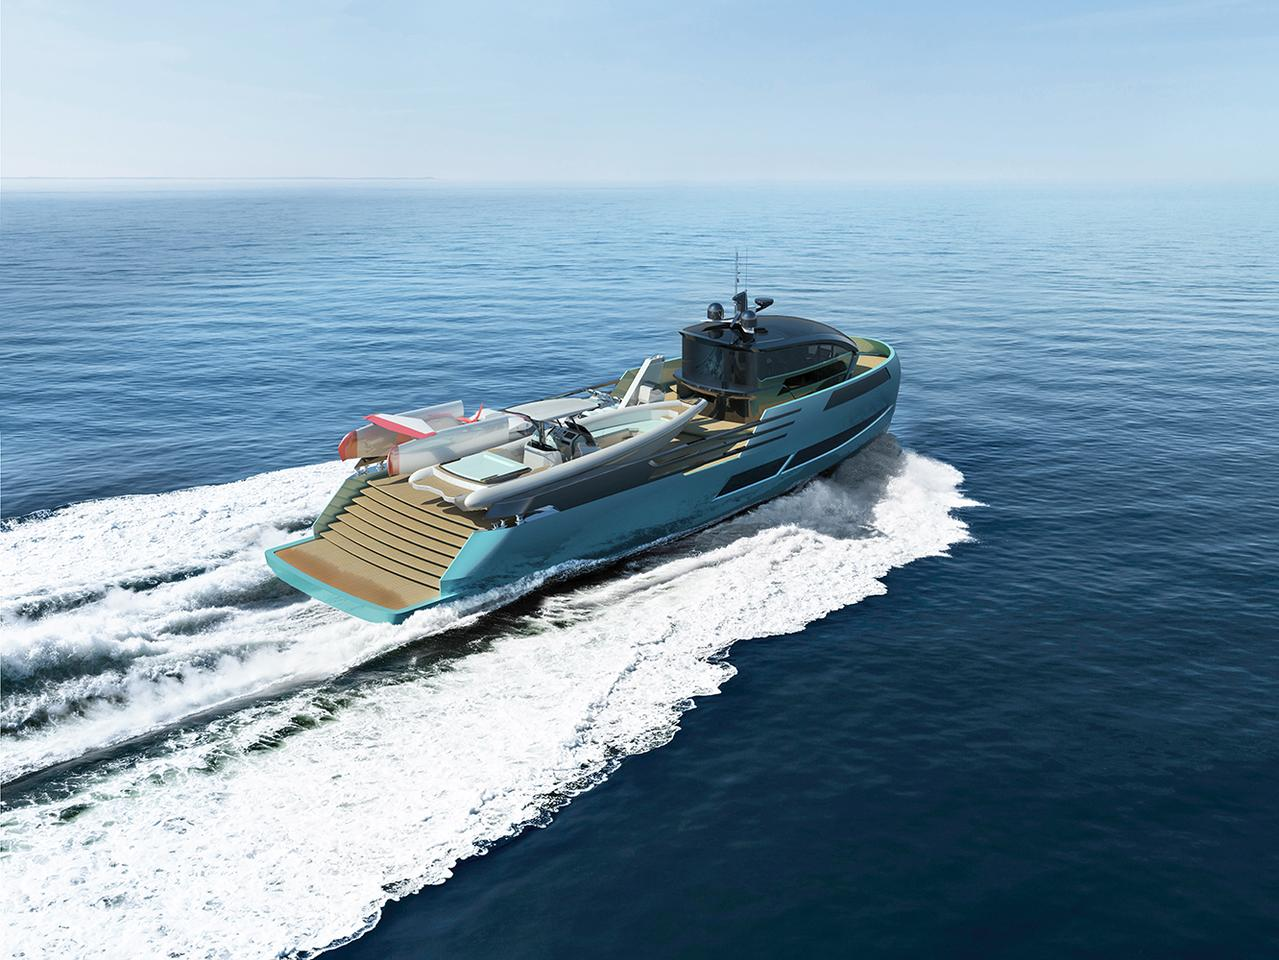 Many a superyacht has space for toys, but the Ice Kite has its own Ice Ghost toy support yacht